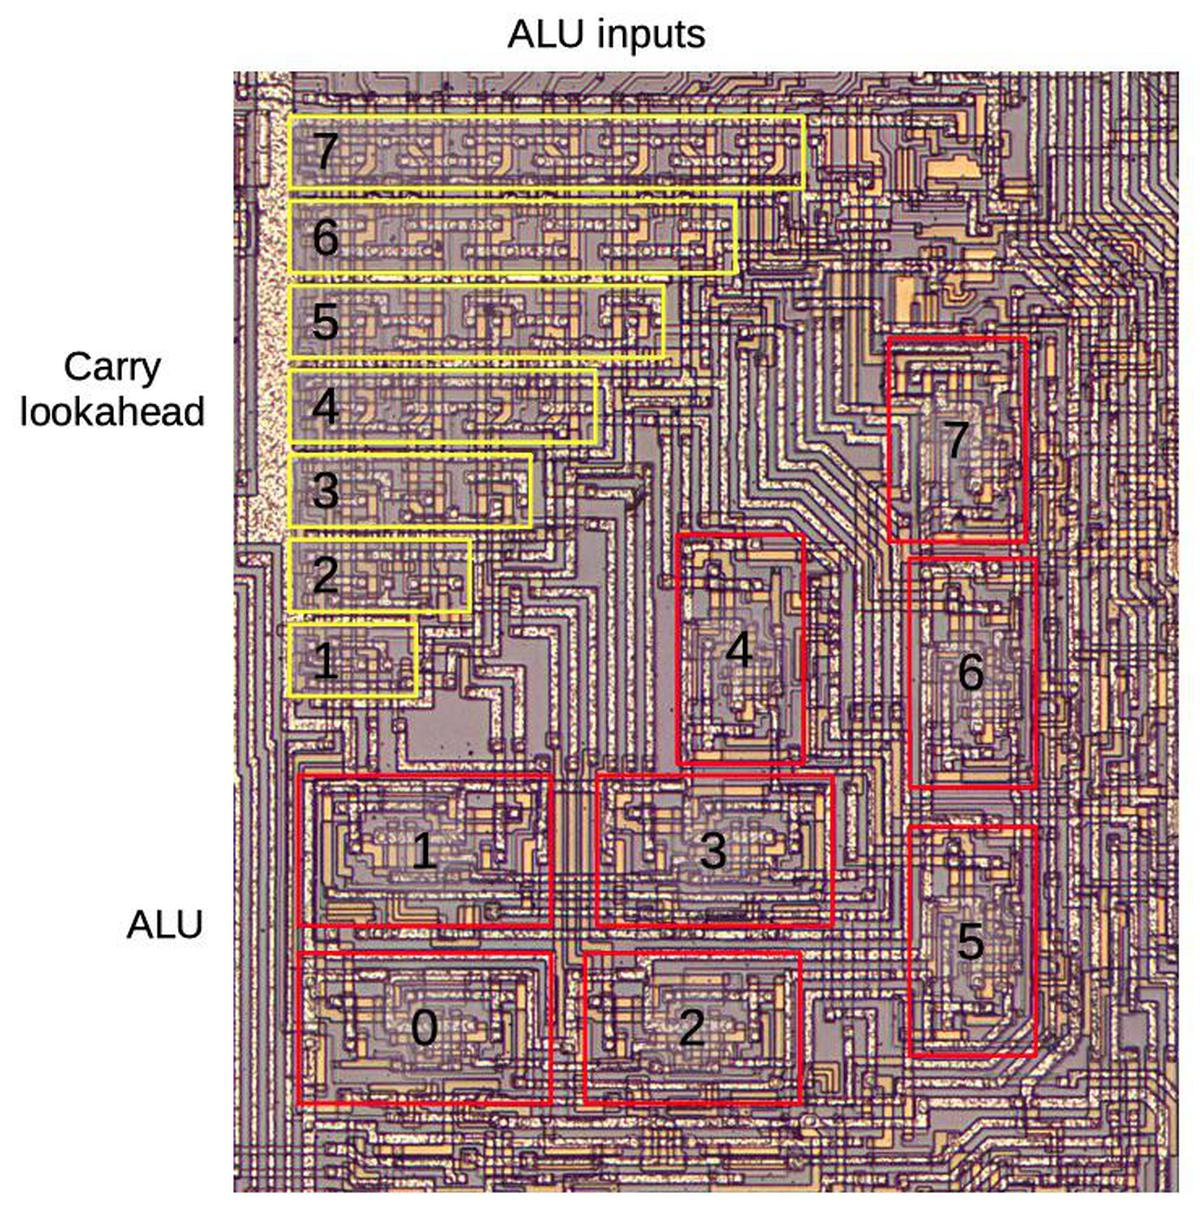 Closeup of the 8008 die showing the carry lookahead circuitry and the ALU.